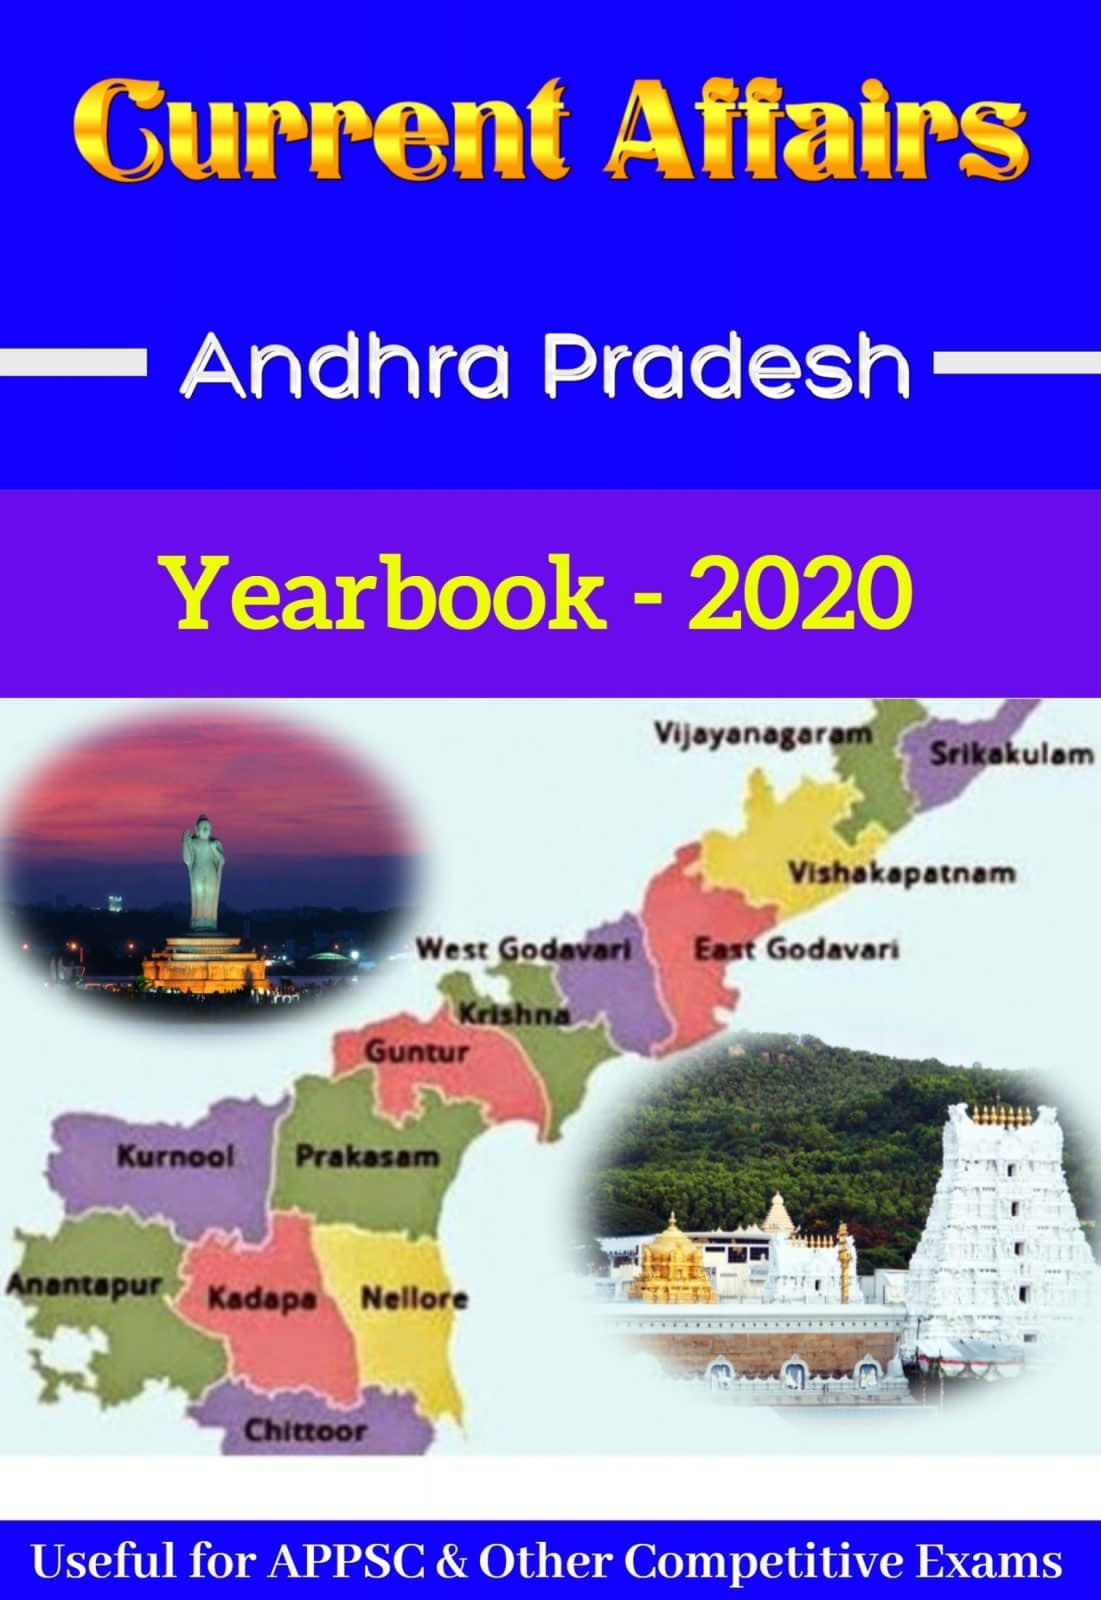 APPSC Andhra Pradesh Current Affairs Yearbook 2020